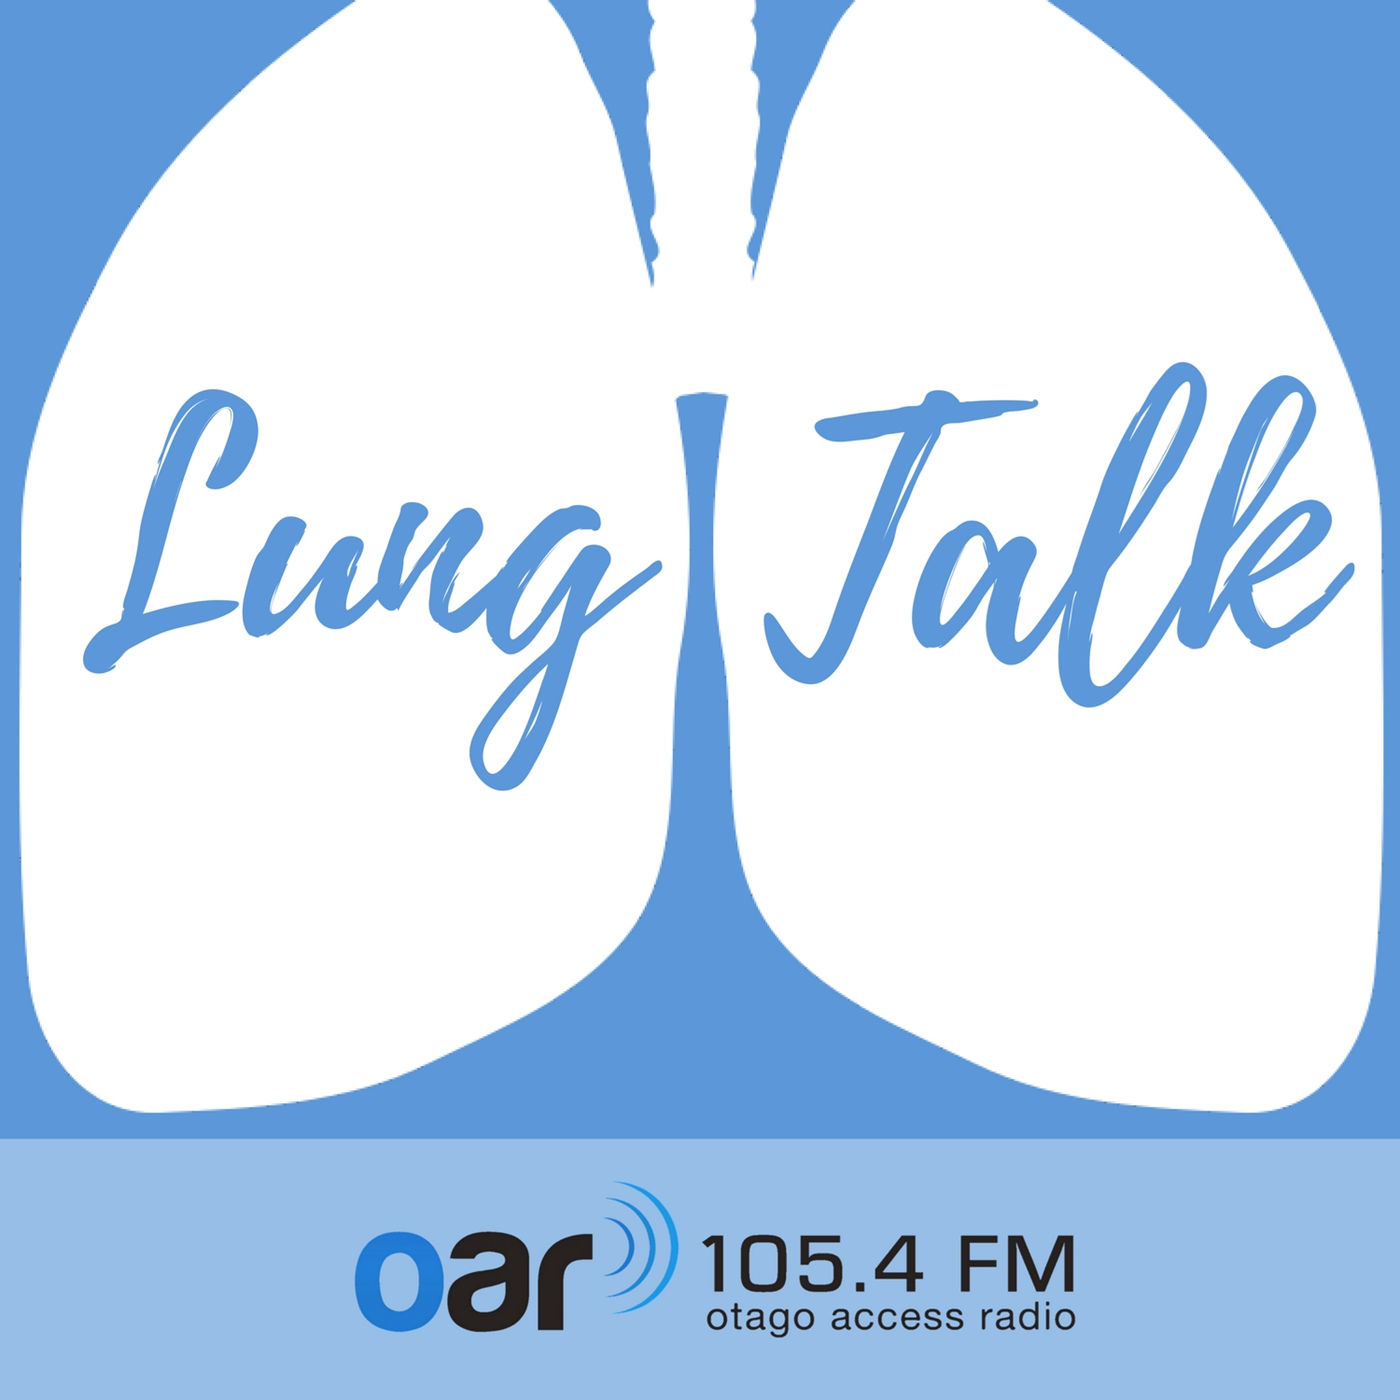 https://cdn.accessradio.org/StationFolder/otago/Images/PCST_LungTalk.png